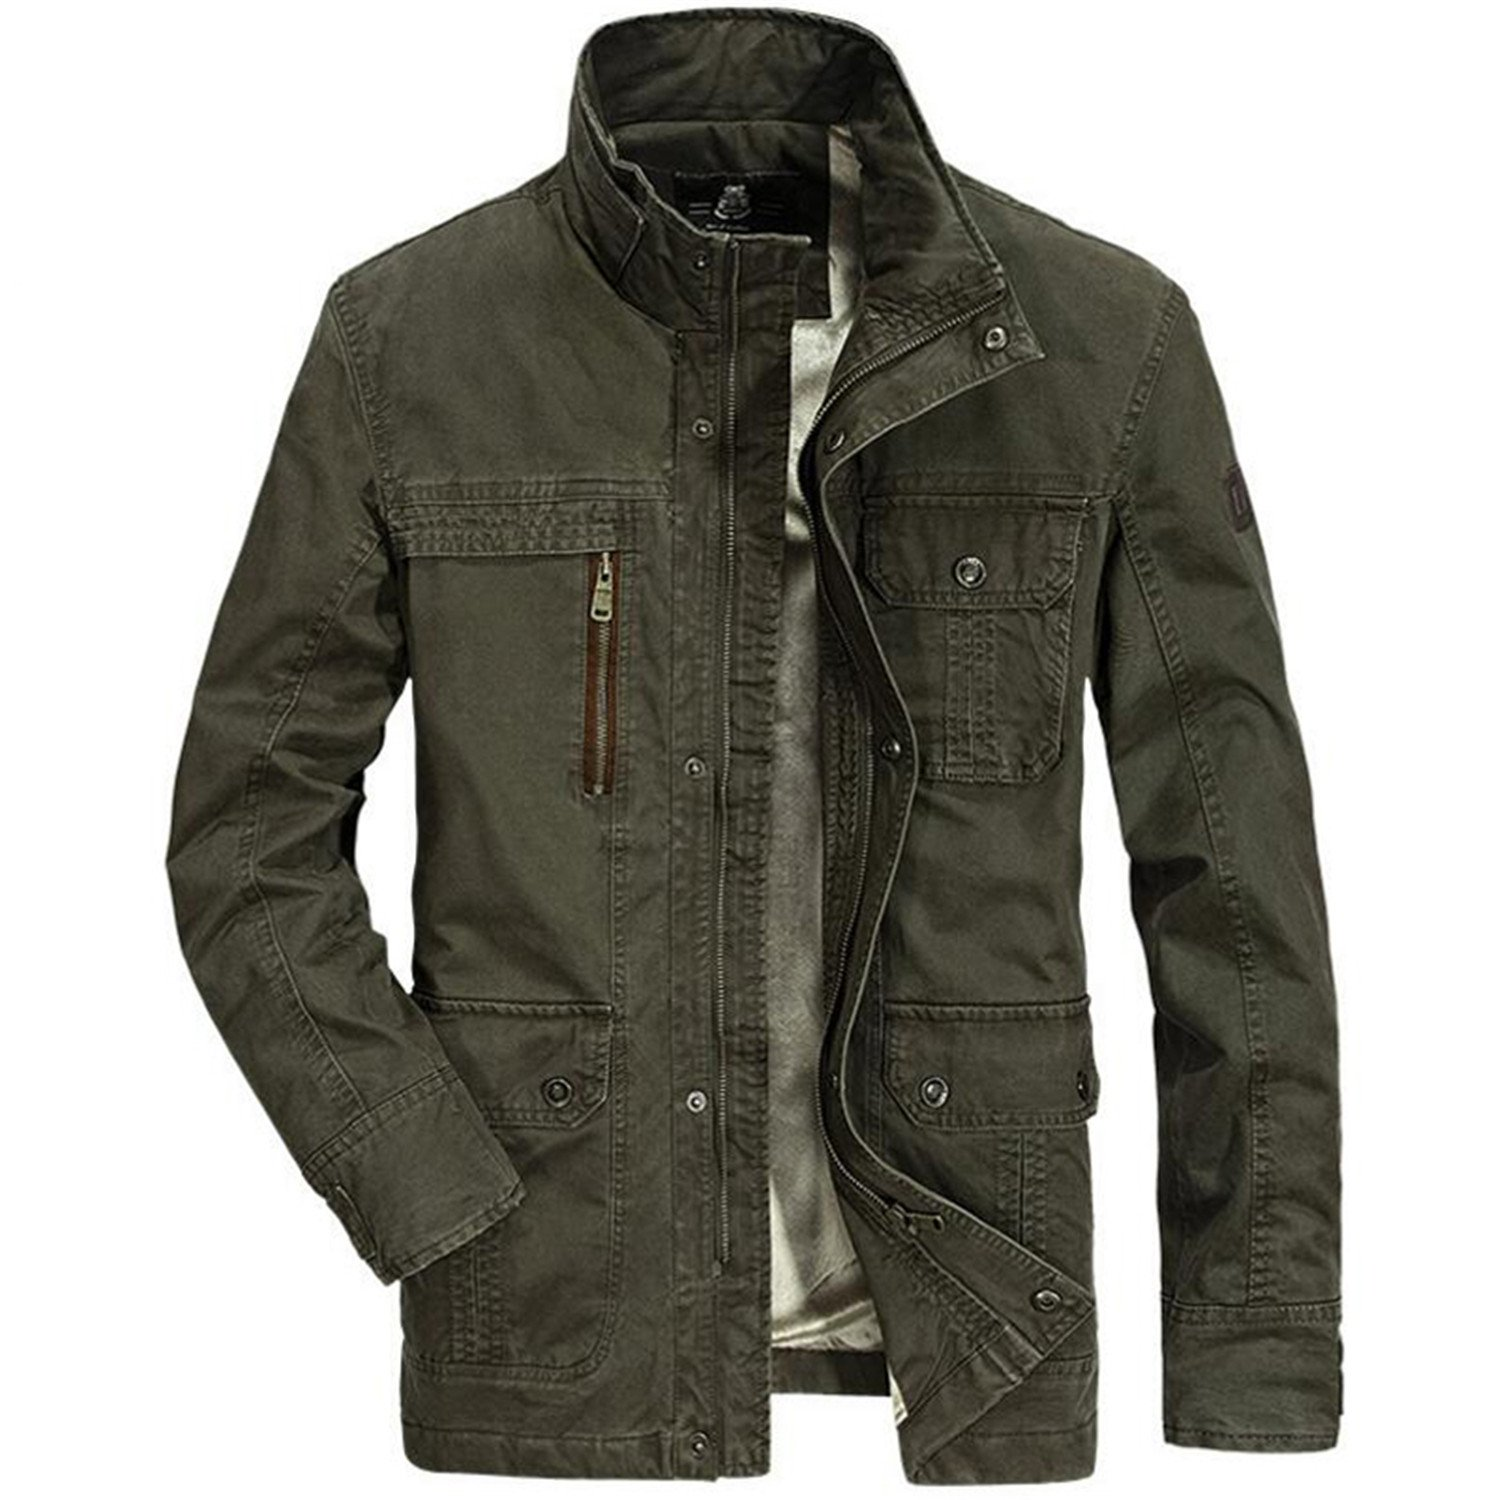 Olive Tayl Jacket Men Brand Coats Male Army Military Jacket Men Plus Size 4XL Multi-pockets Fleece Thick Warm at Amazon Mens Clothing store: